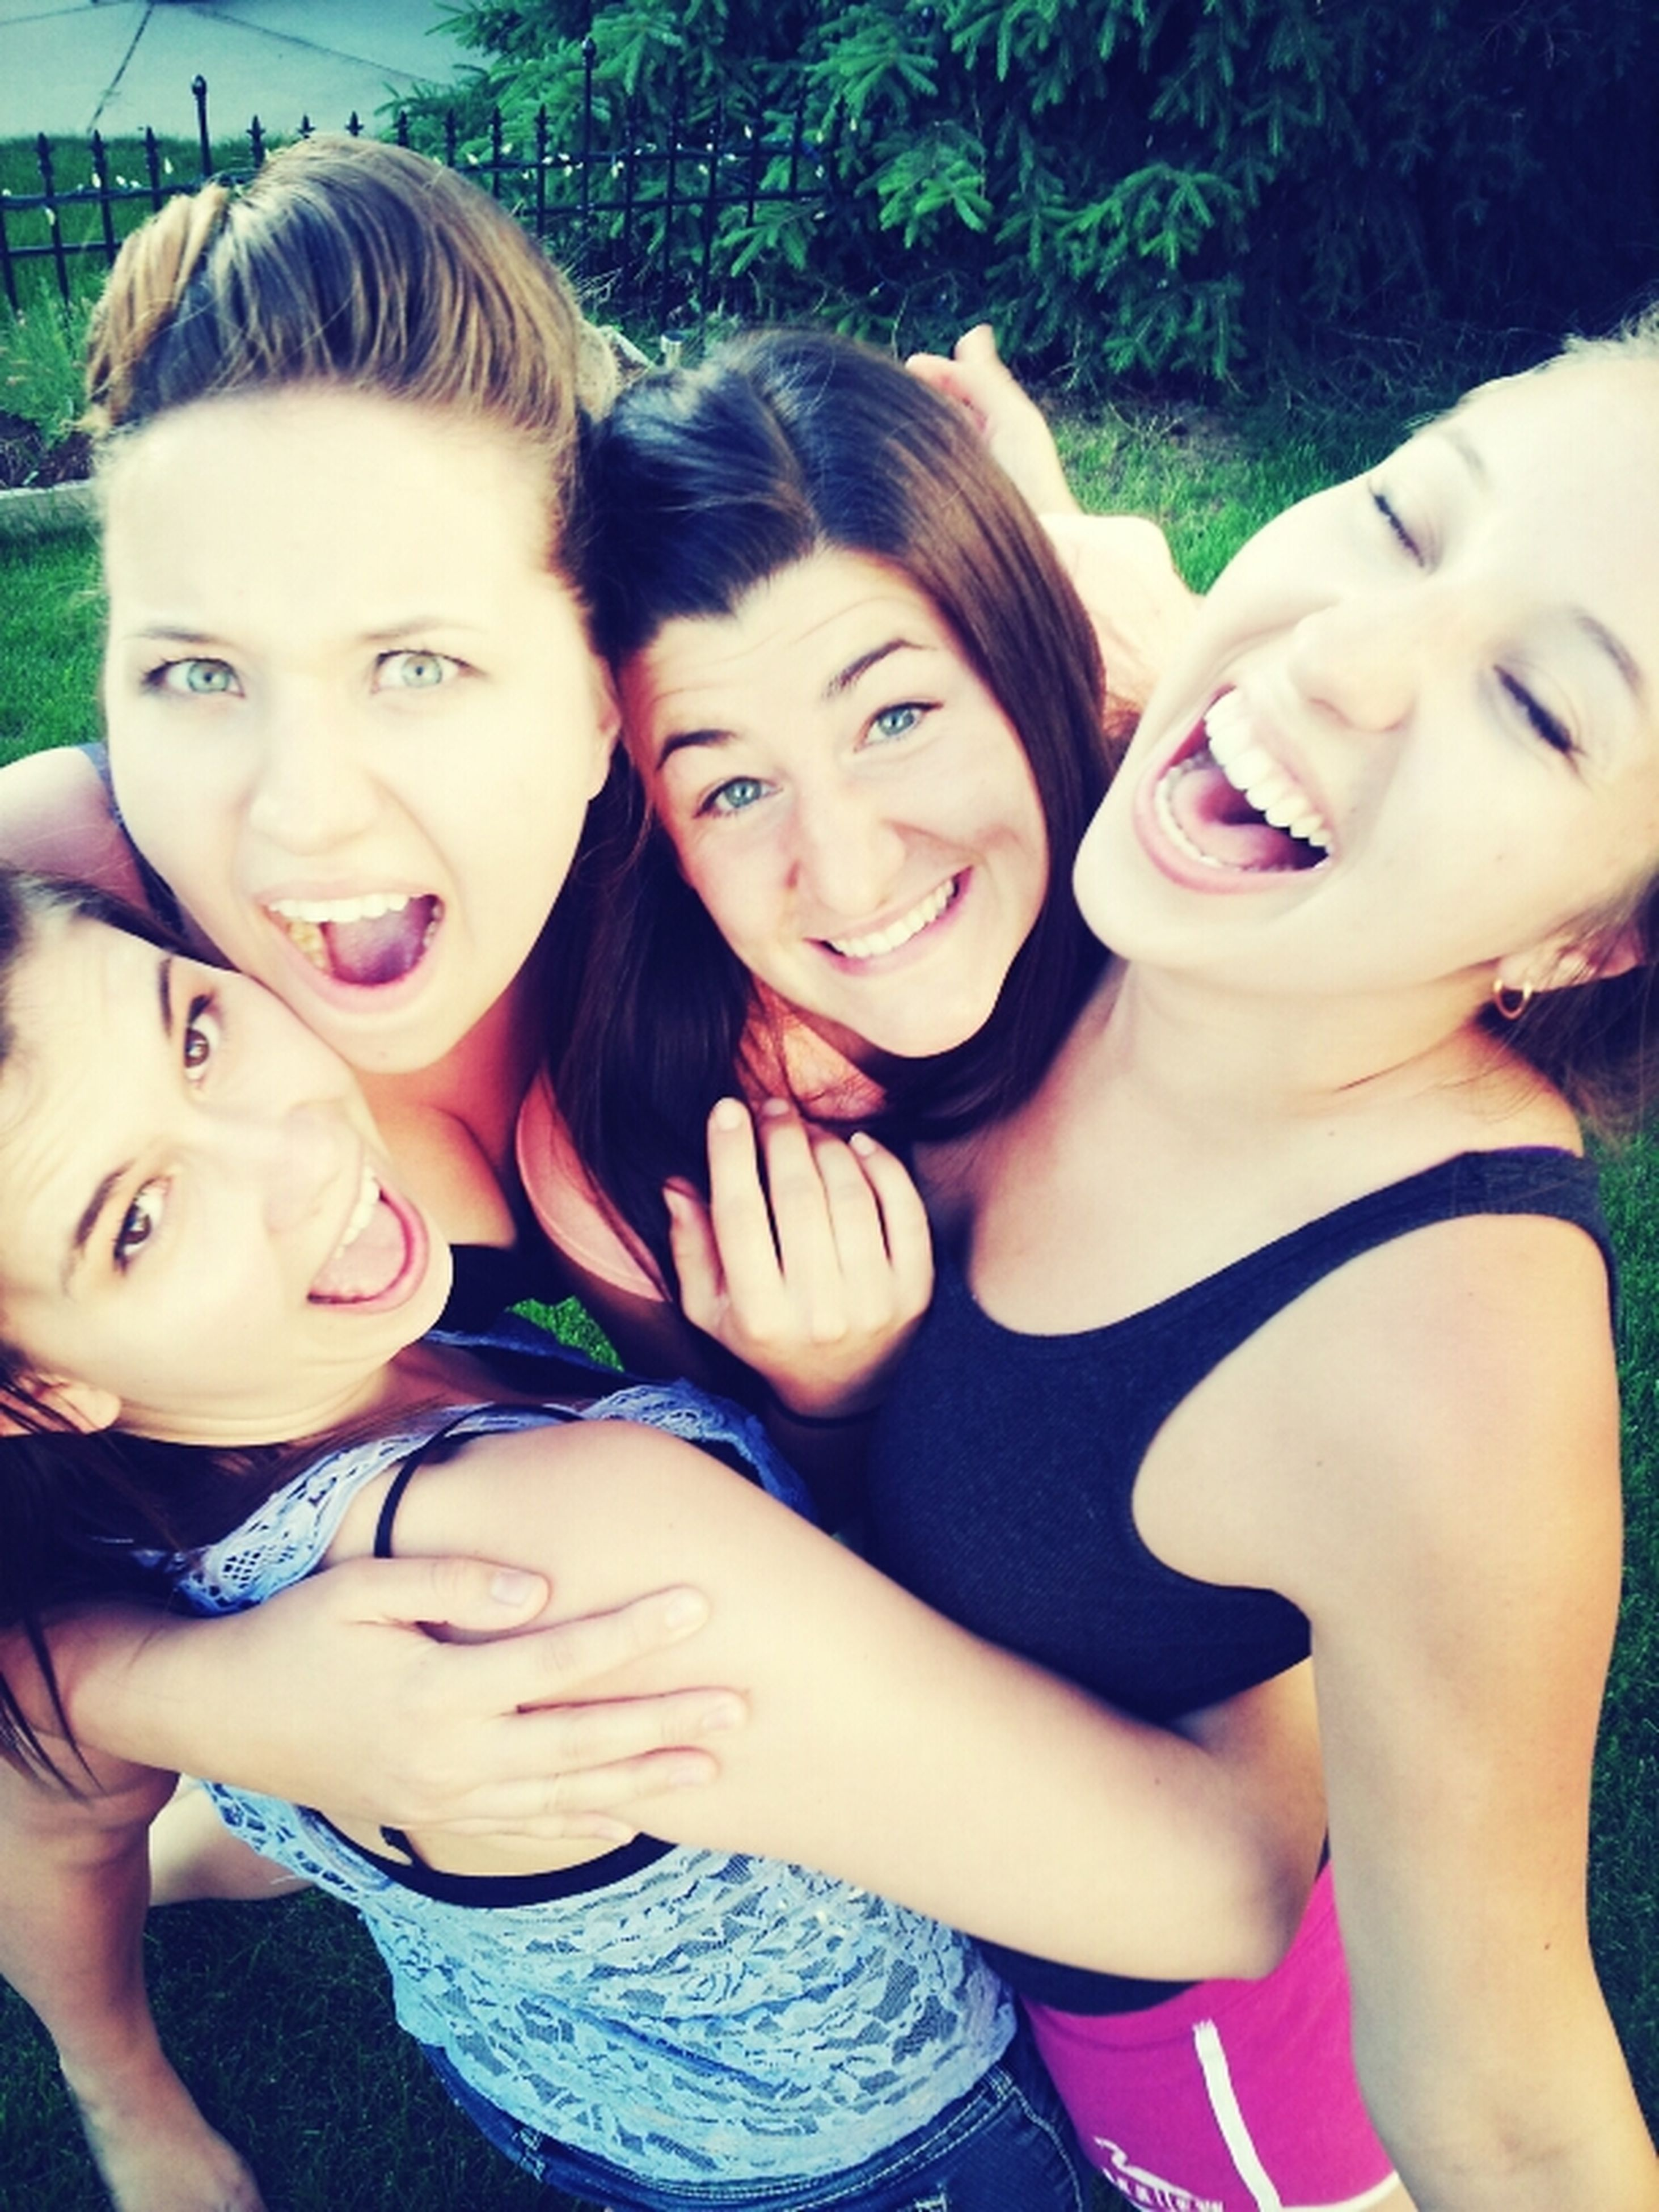 bonding, togetherness, person, love, lifestyles, happiness, smiling, looking at camera, portrait, leisure activity, family, friendship, young adult, front view, young women, childhood, sister, sibling